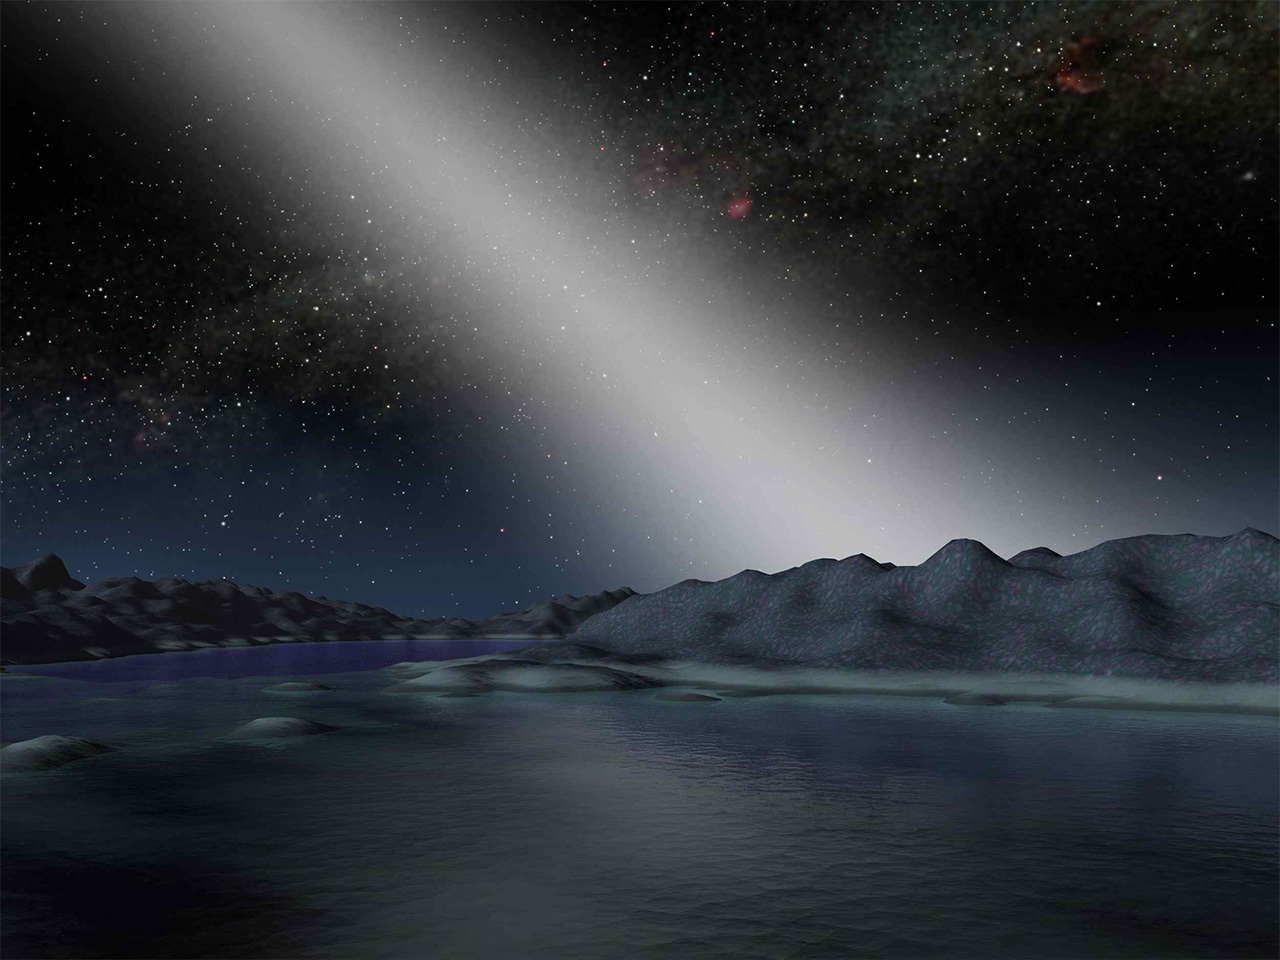 Illustration from a planet's surface of the night sky.